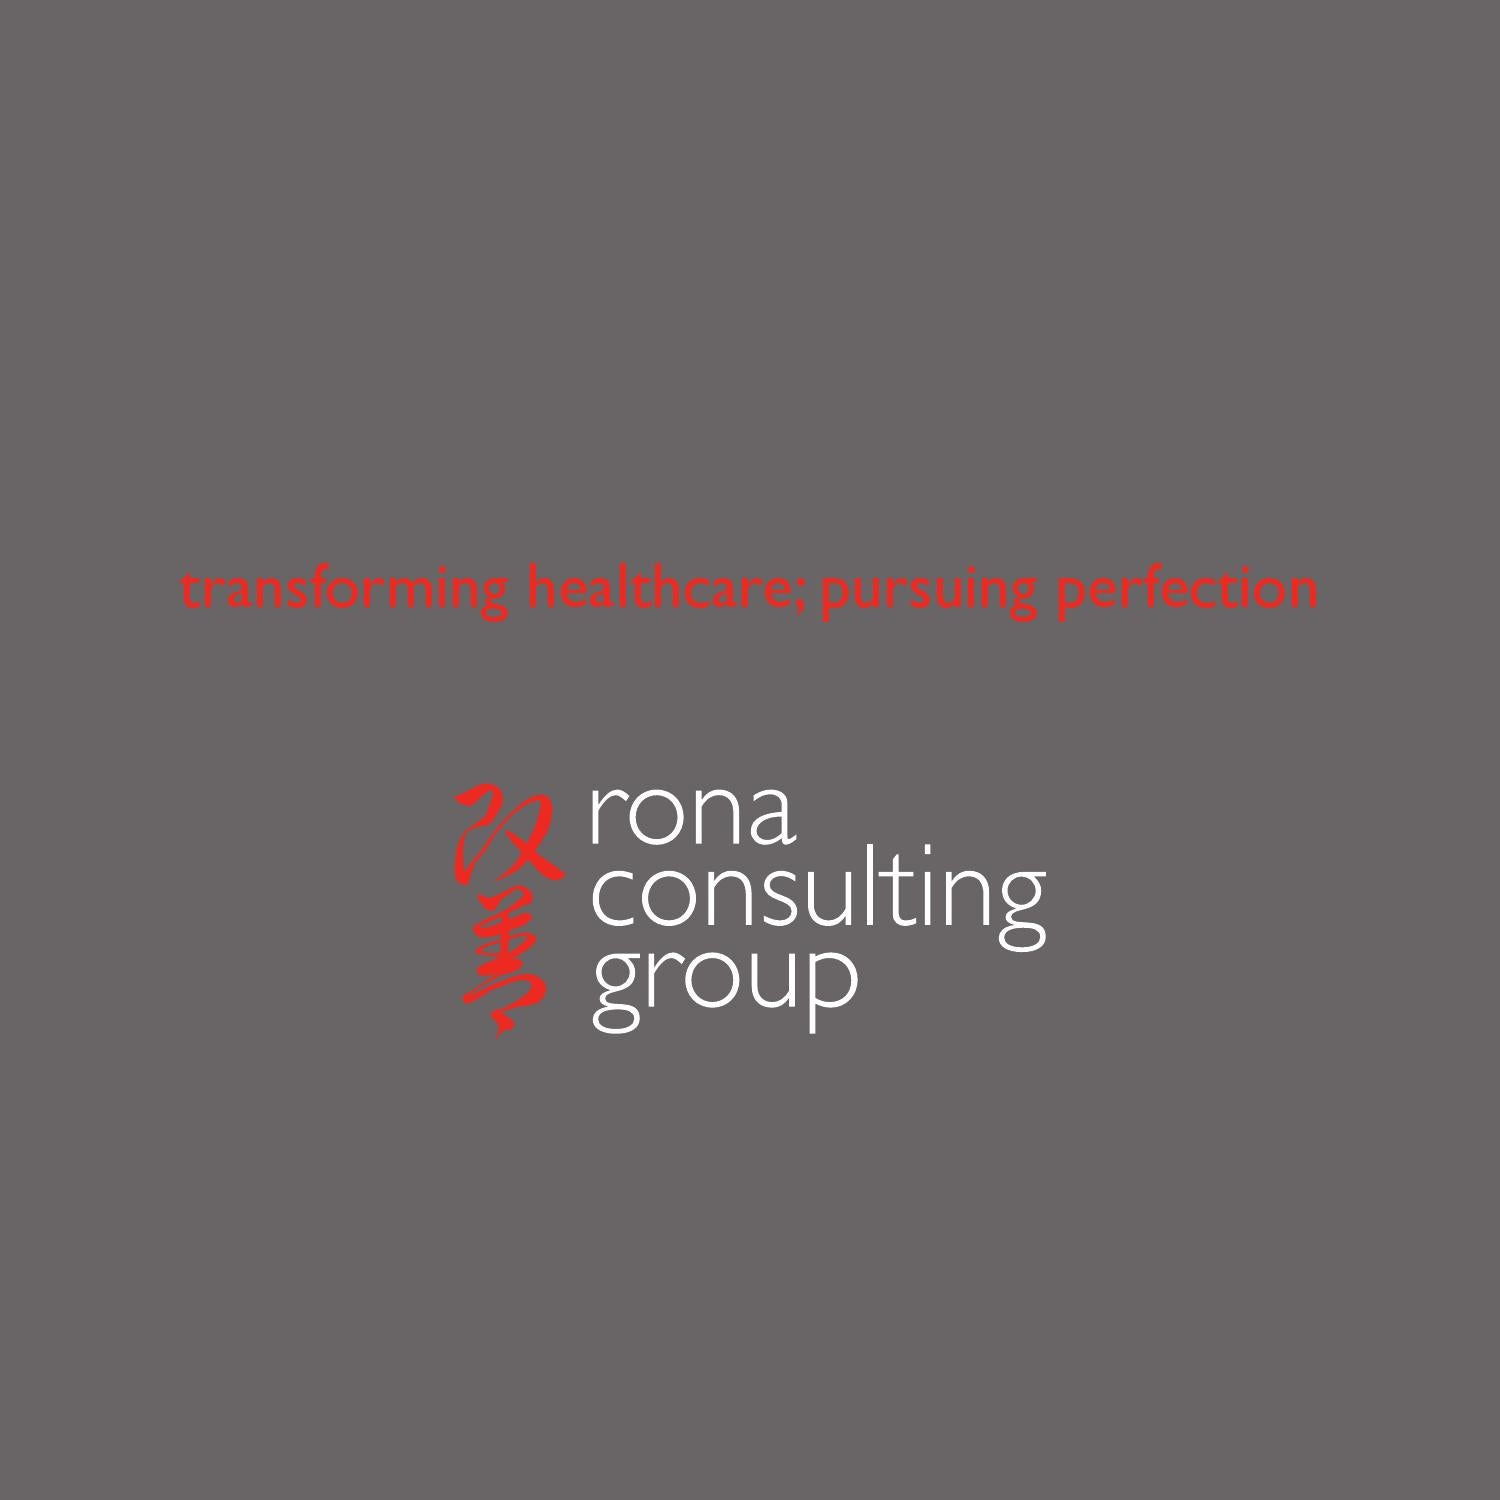 Rona Moving Boxes Rona Consulting Group Brochure 2014 By Rona Consulting Group The